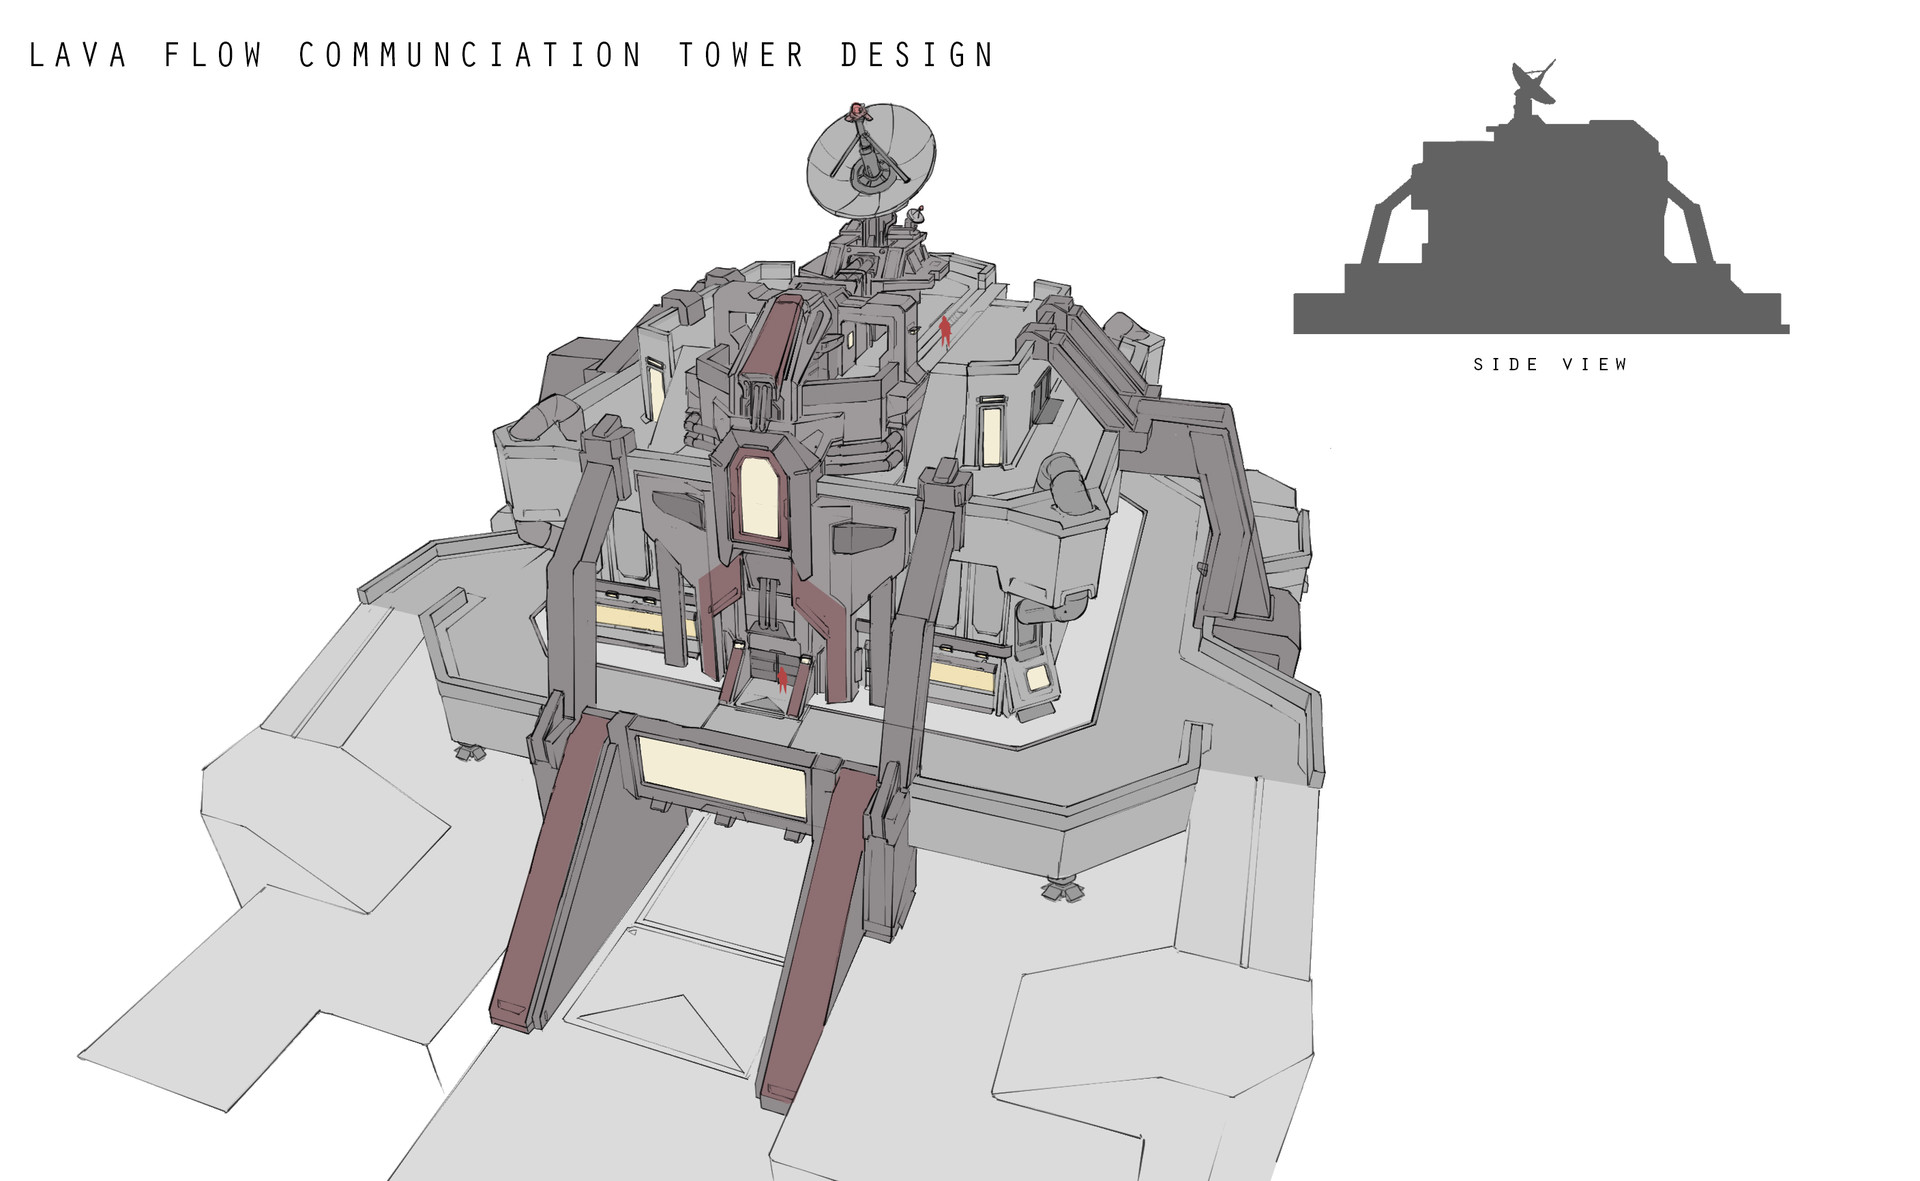 Franklin chan lava flow comm tower design layout